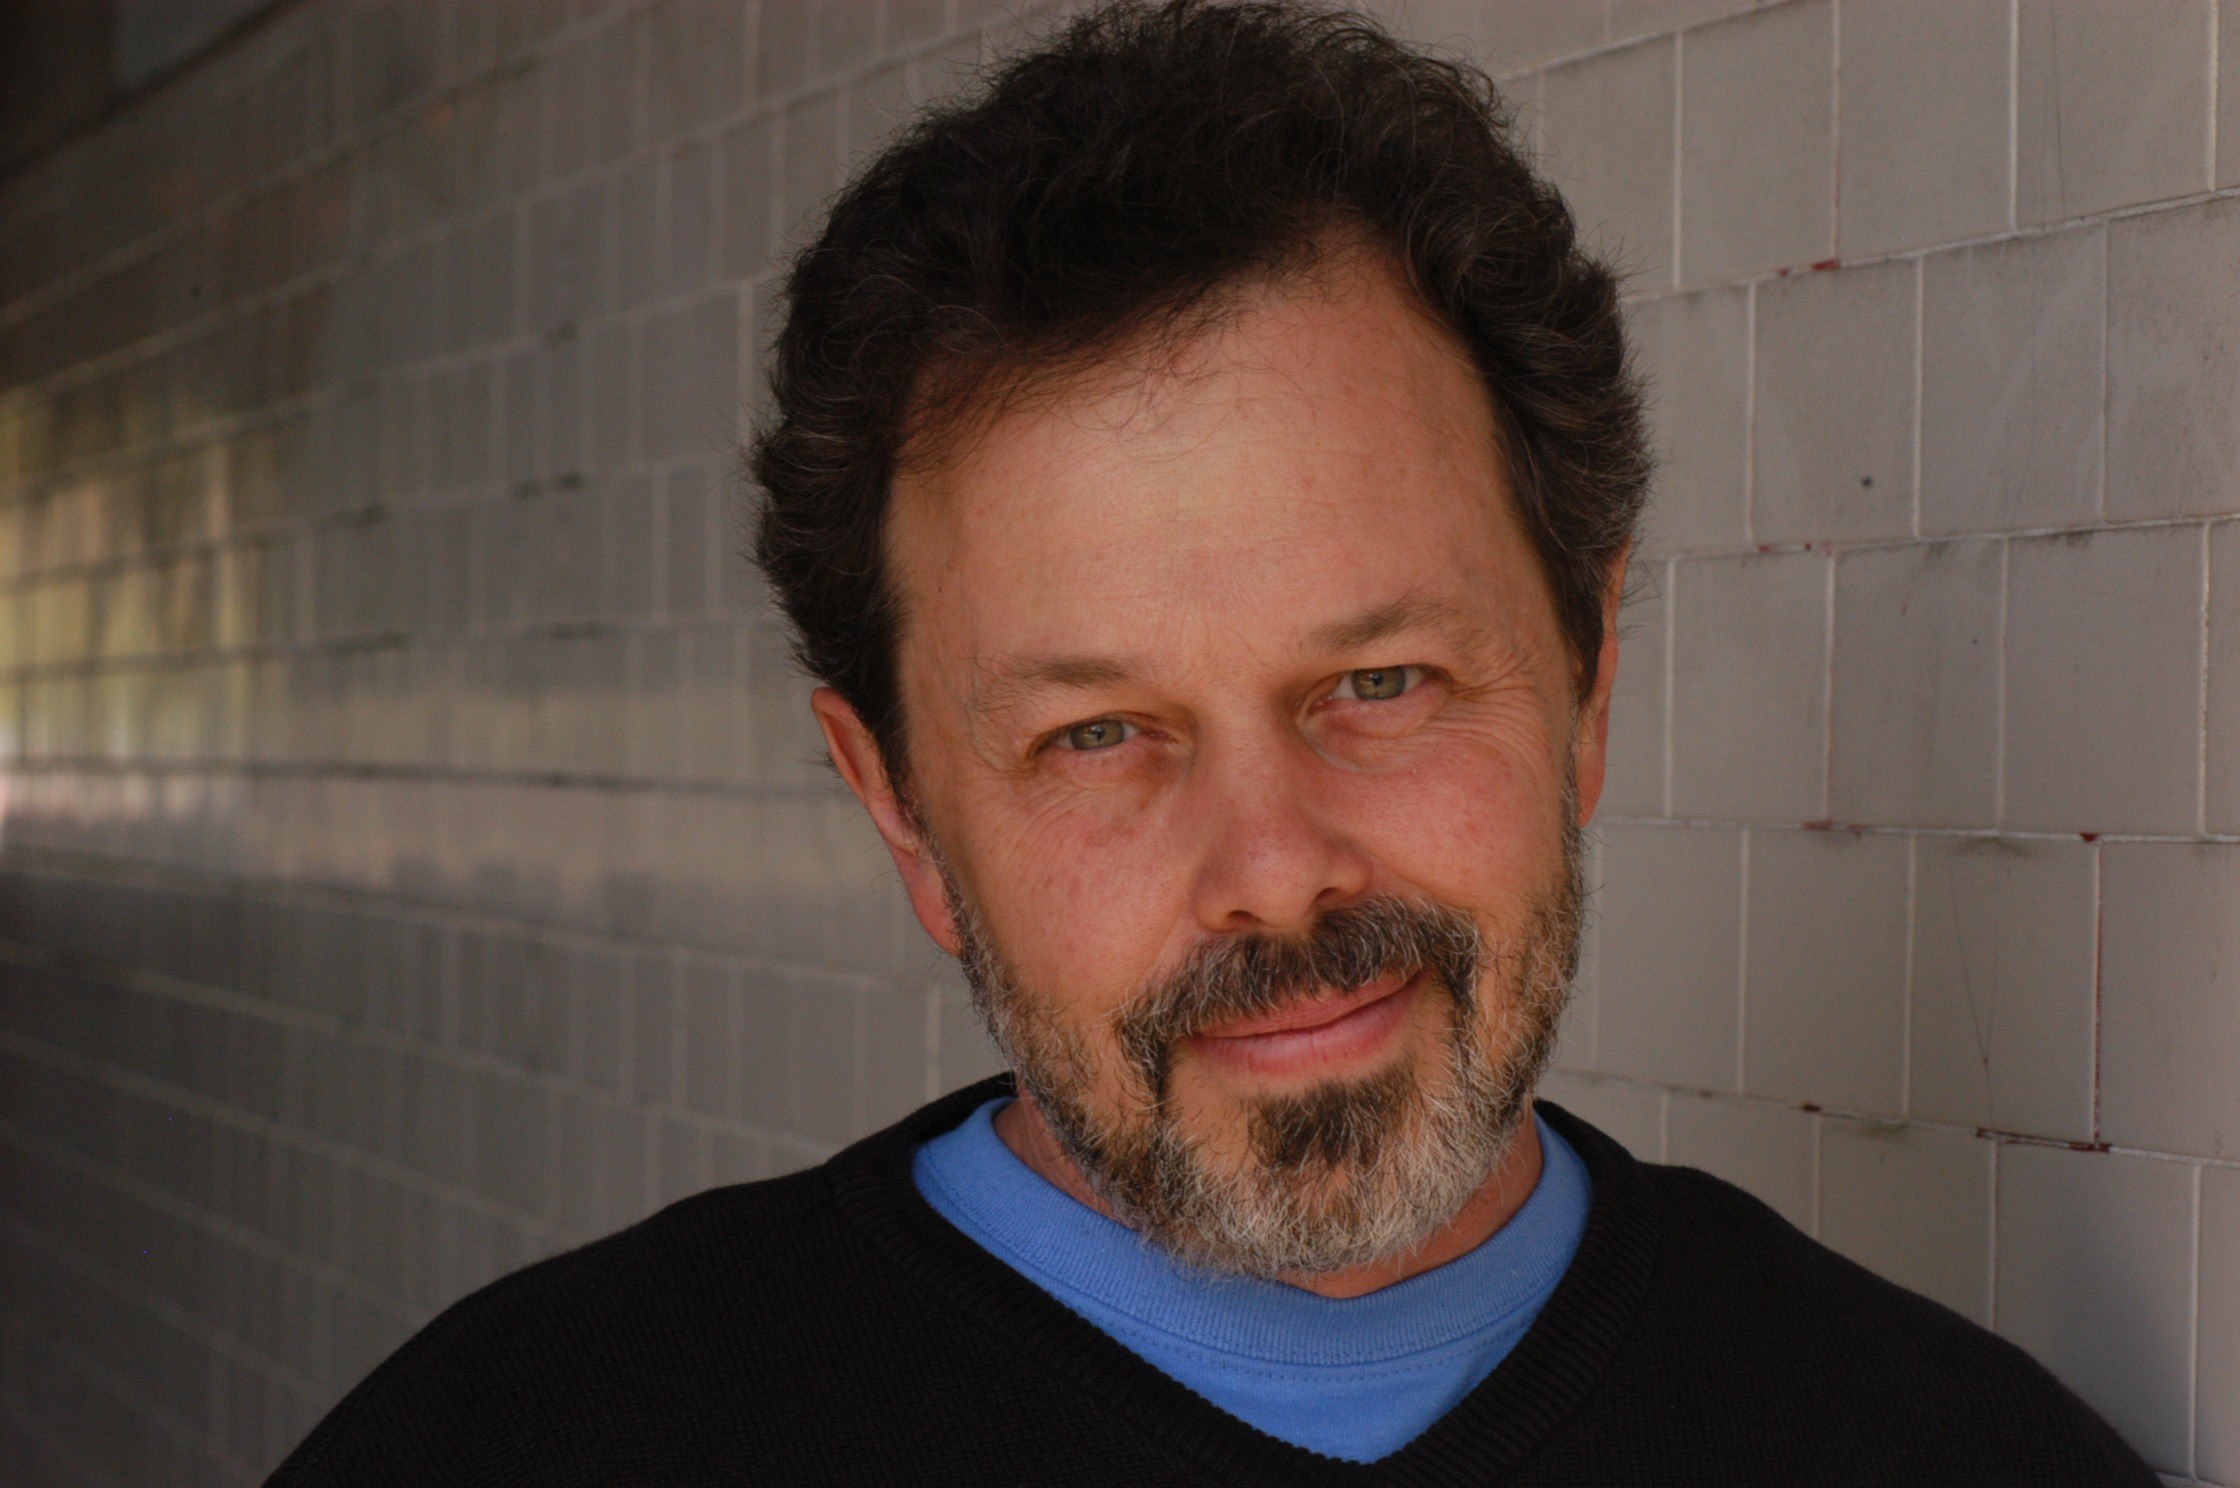 curtis armstrong revenge of the nerdscurtis armstrong height, curtis armstrong criminal minds, curtis armstrong, кертис армстронг, curtis armstrong supernatural, curtis armstrong moonlighting, curtis armstrong facebook, кертис армстронг фильмография, curtis armstrong wikipedia, curtis armstrong suits, curtis armstrong tim curry, curtis armstrong breaking bad, curtis armstrong net worth, curtis armstrong imdb, curtis armstrong american dad, curtis armstrong twitter, curtis armstrong joker, curtis armstrong revenge of the nerds, curtis armstrong better off dead, curtis armstrong icarly